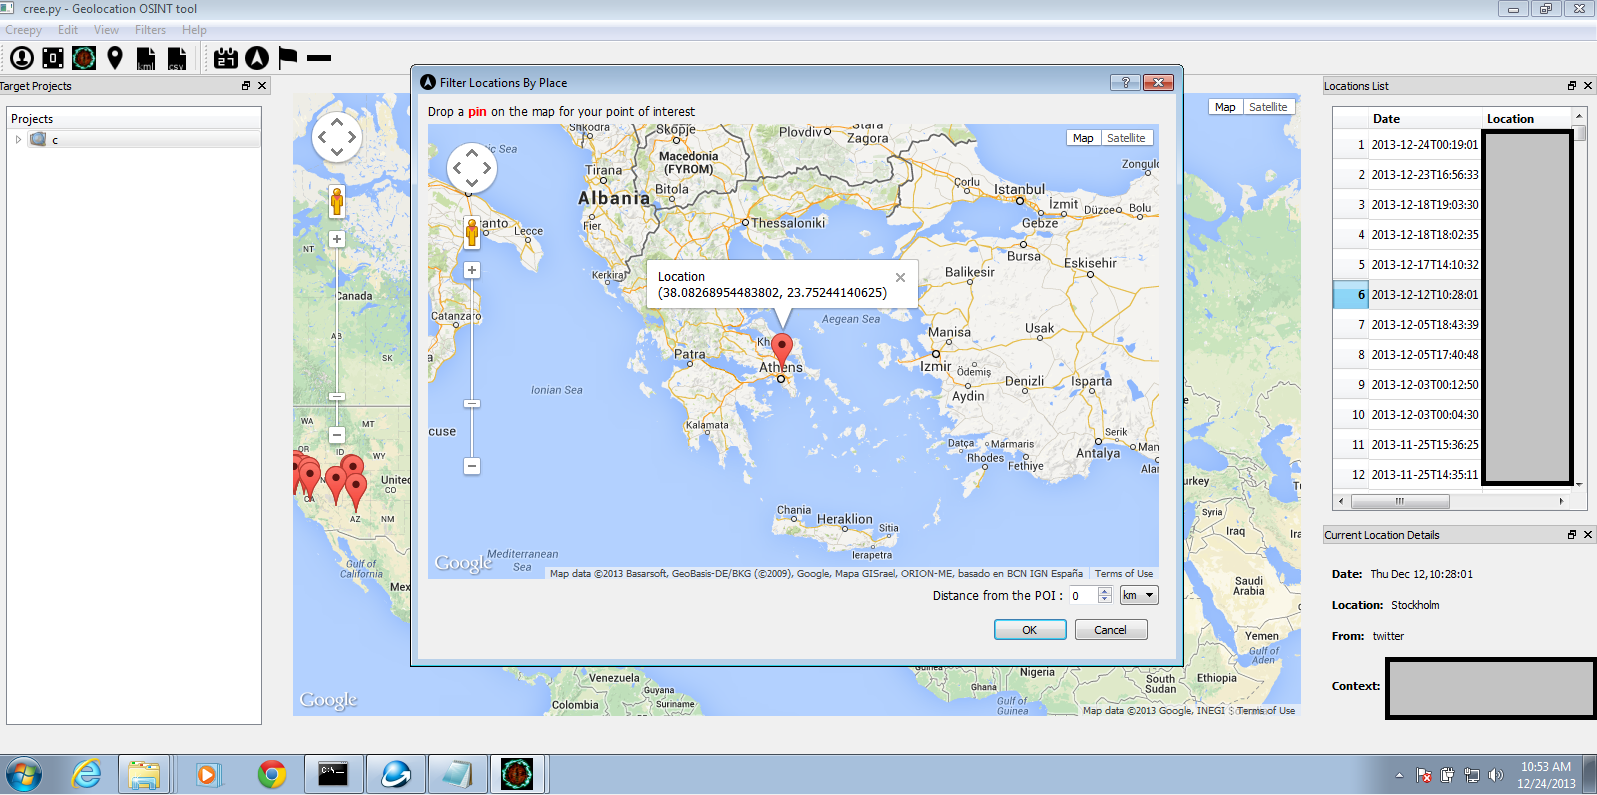 Filtering Results by Location